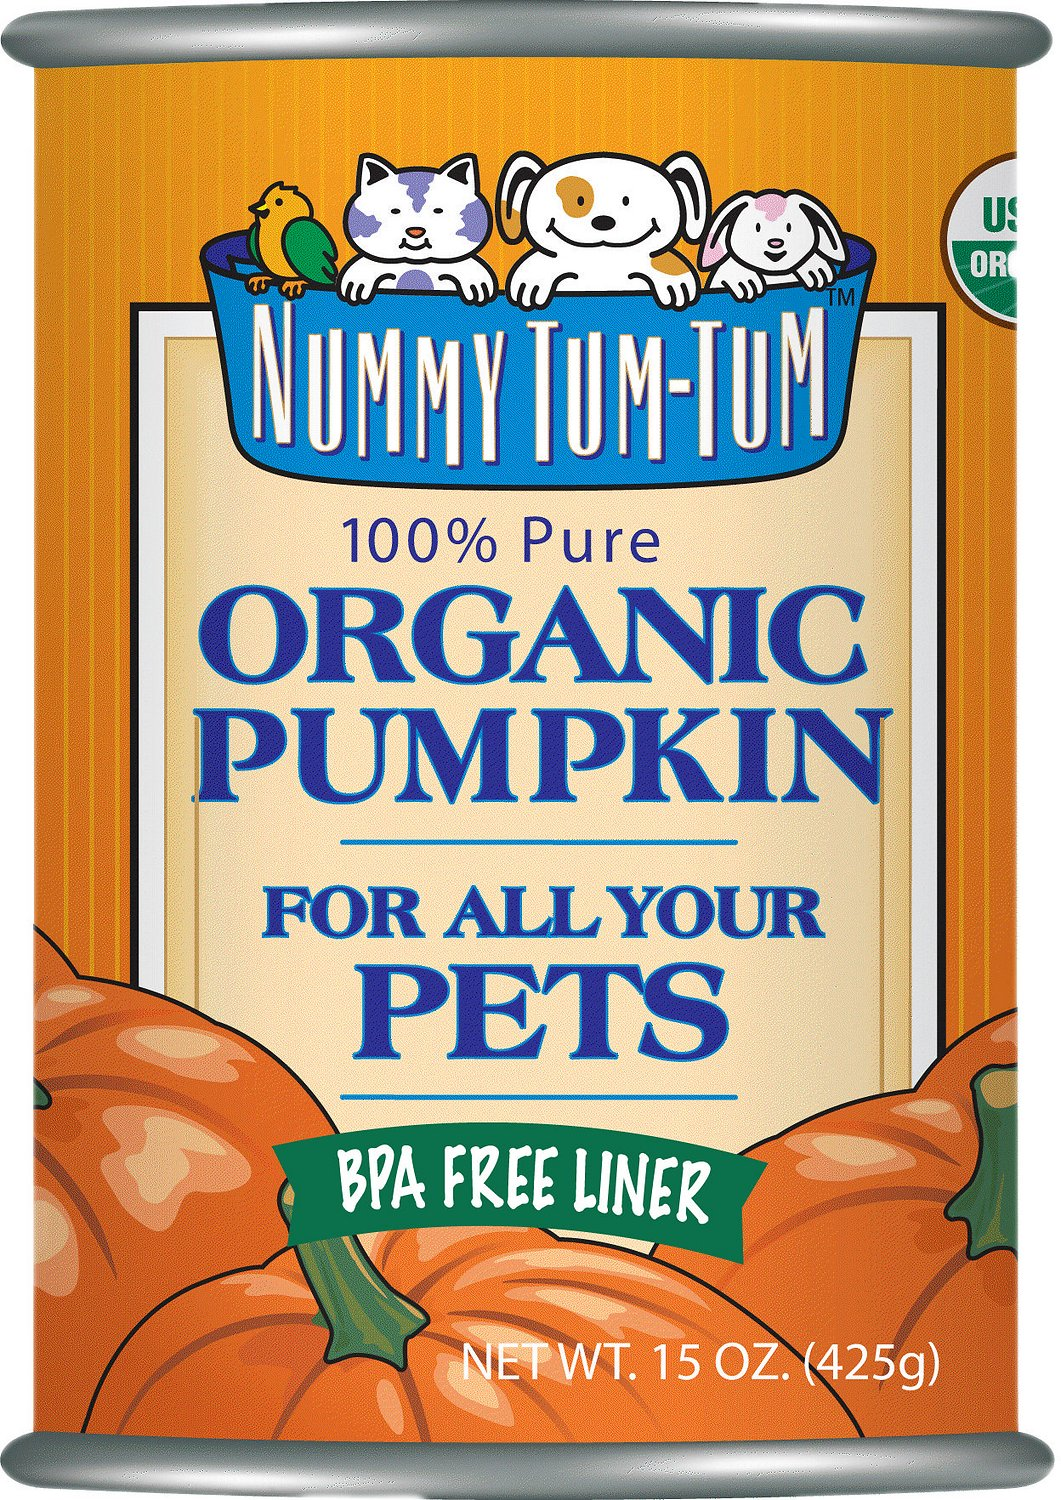 Nummy Tum-Tum Pure Organic Pumpkin Canned Dog & Cat Food Supplement, 15 Ounces